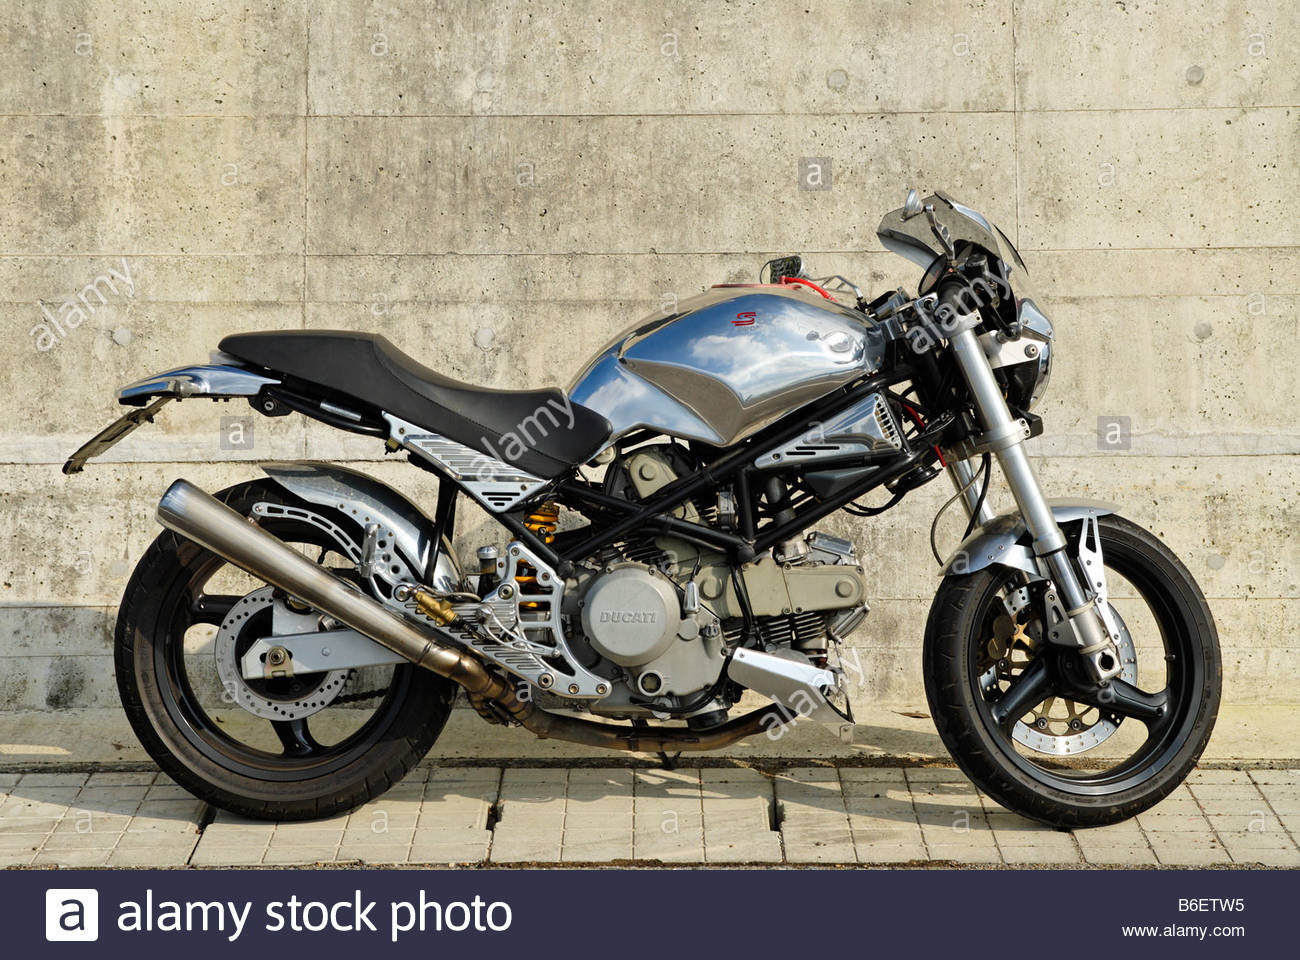 Ducati Monster 400 Spare Parts Wiring Diagram Motorcycle Customized With Aluminium Stock Image Photos Images Alamy